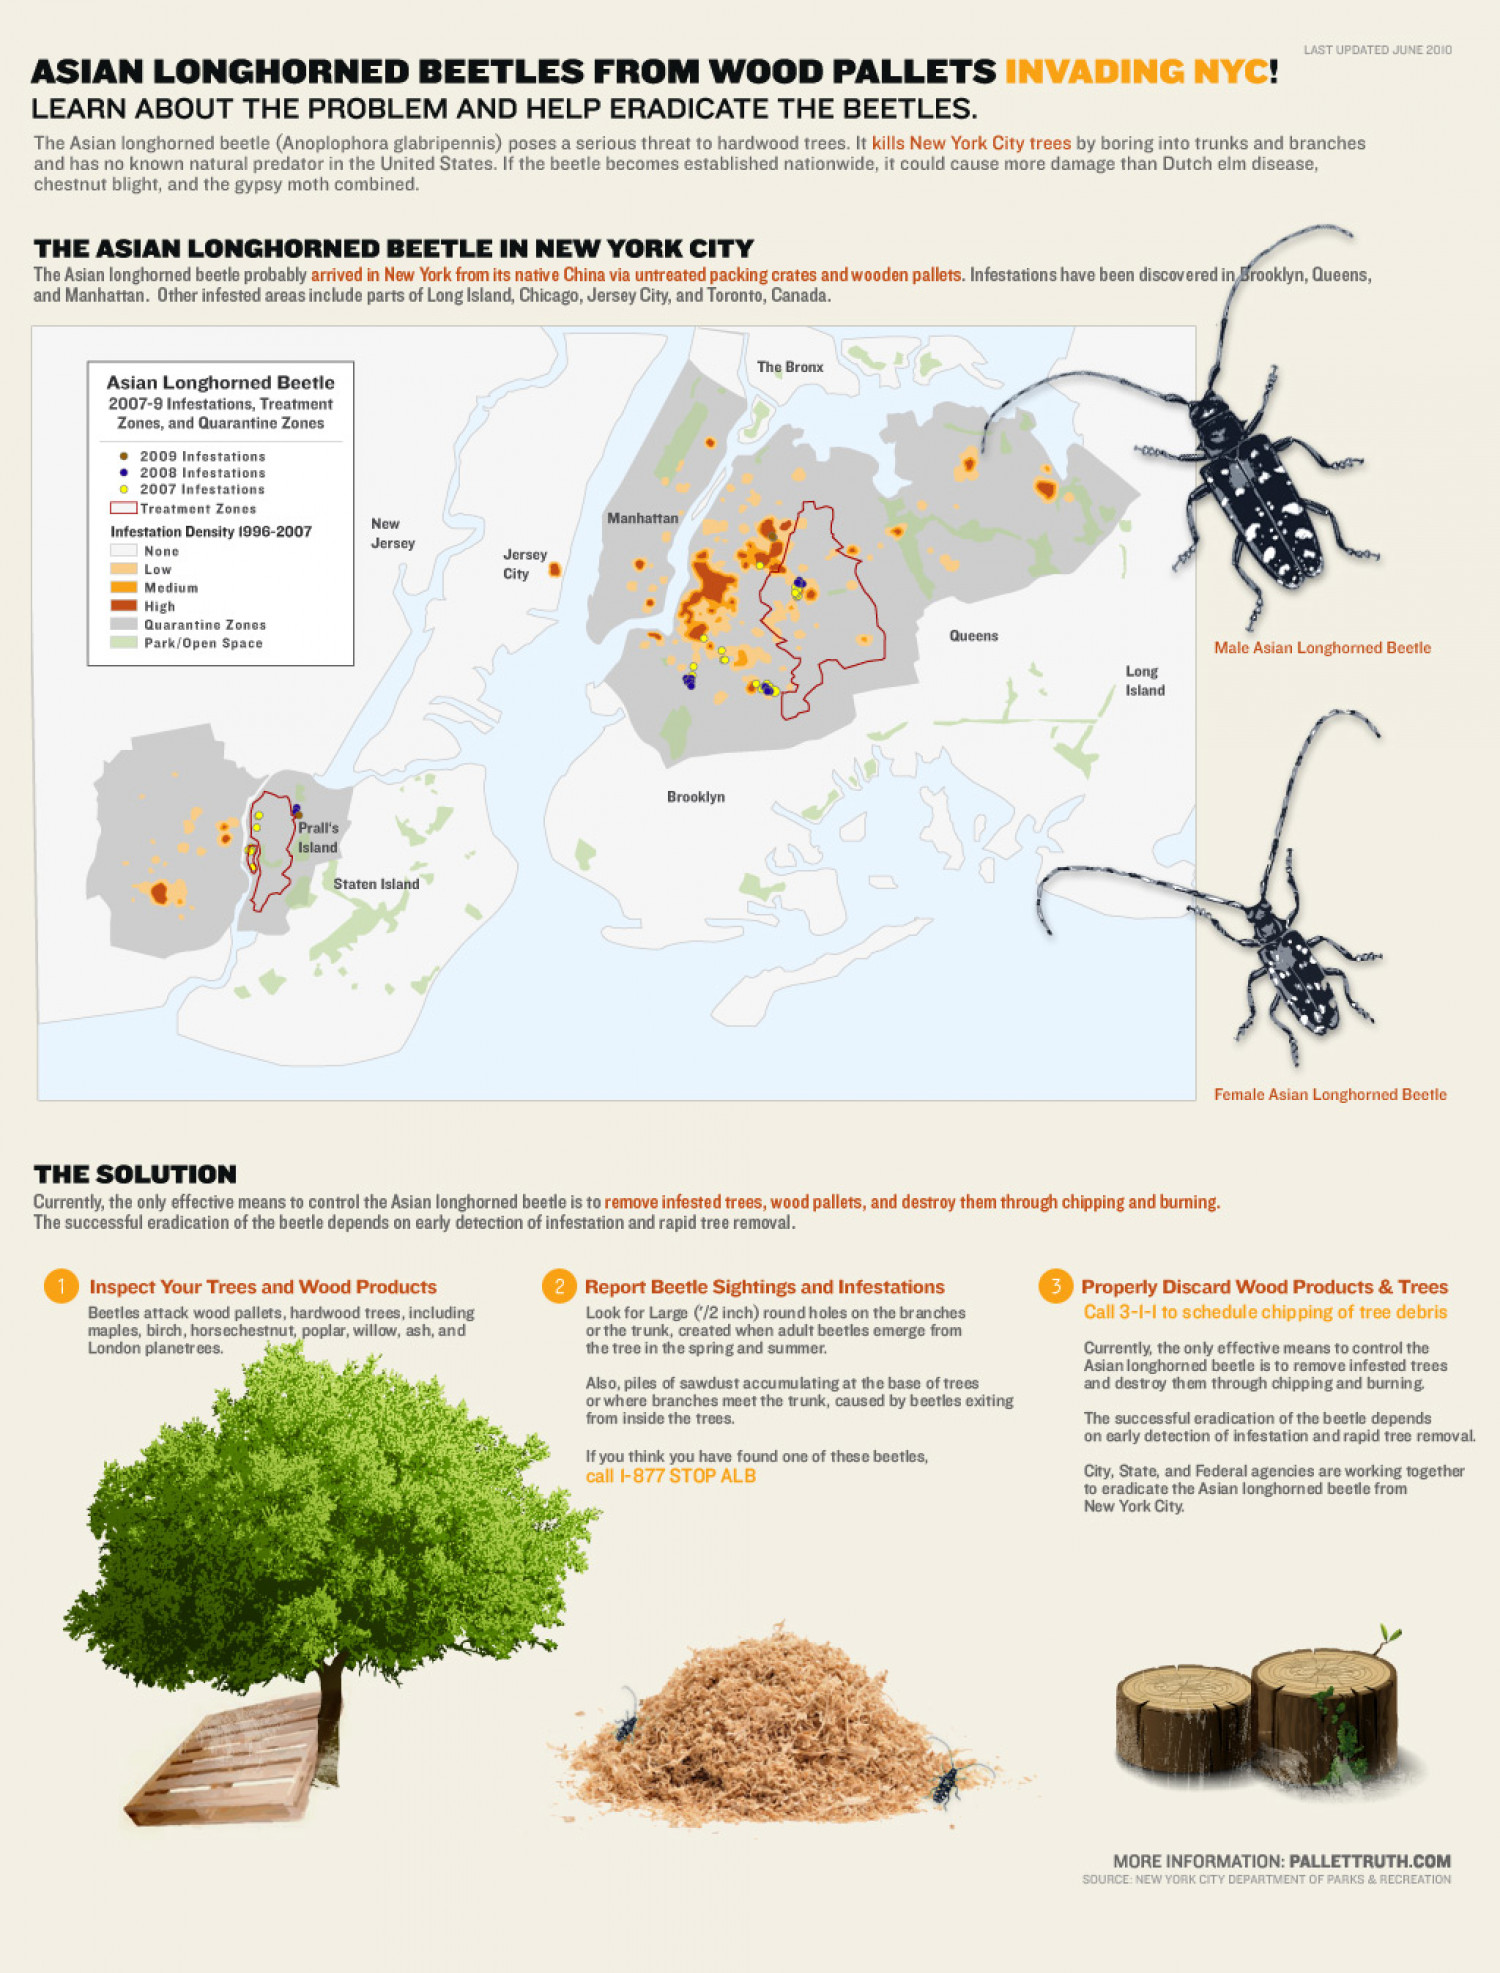 ASIAN LONGHORNED BEETLE KILLING NEW YORK CITY TREES Infographic